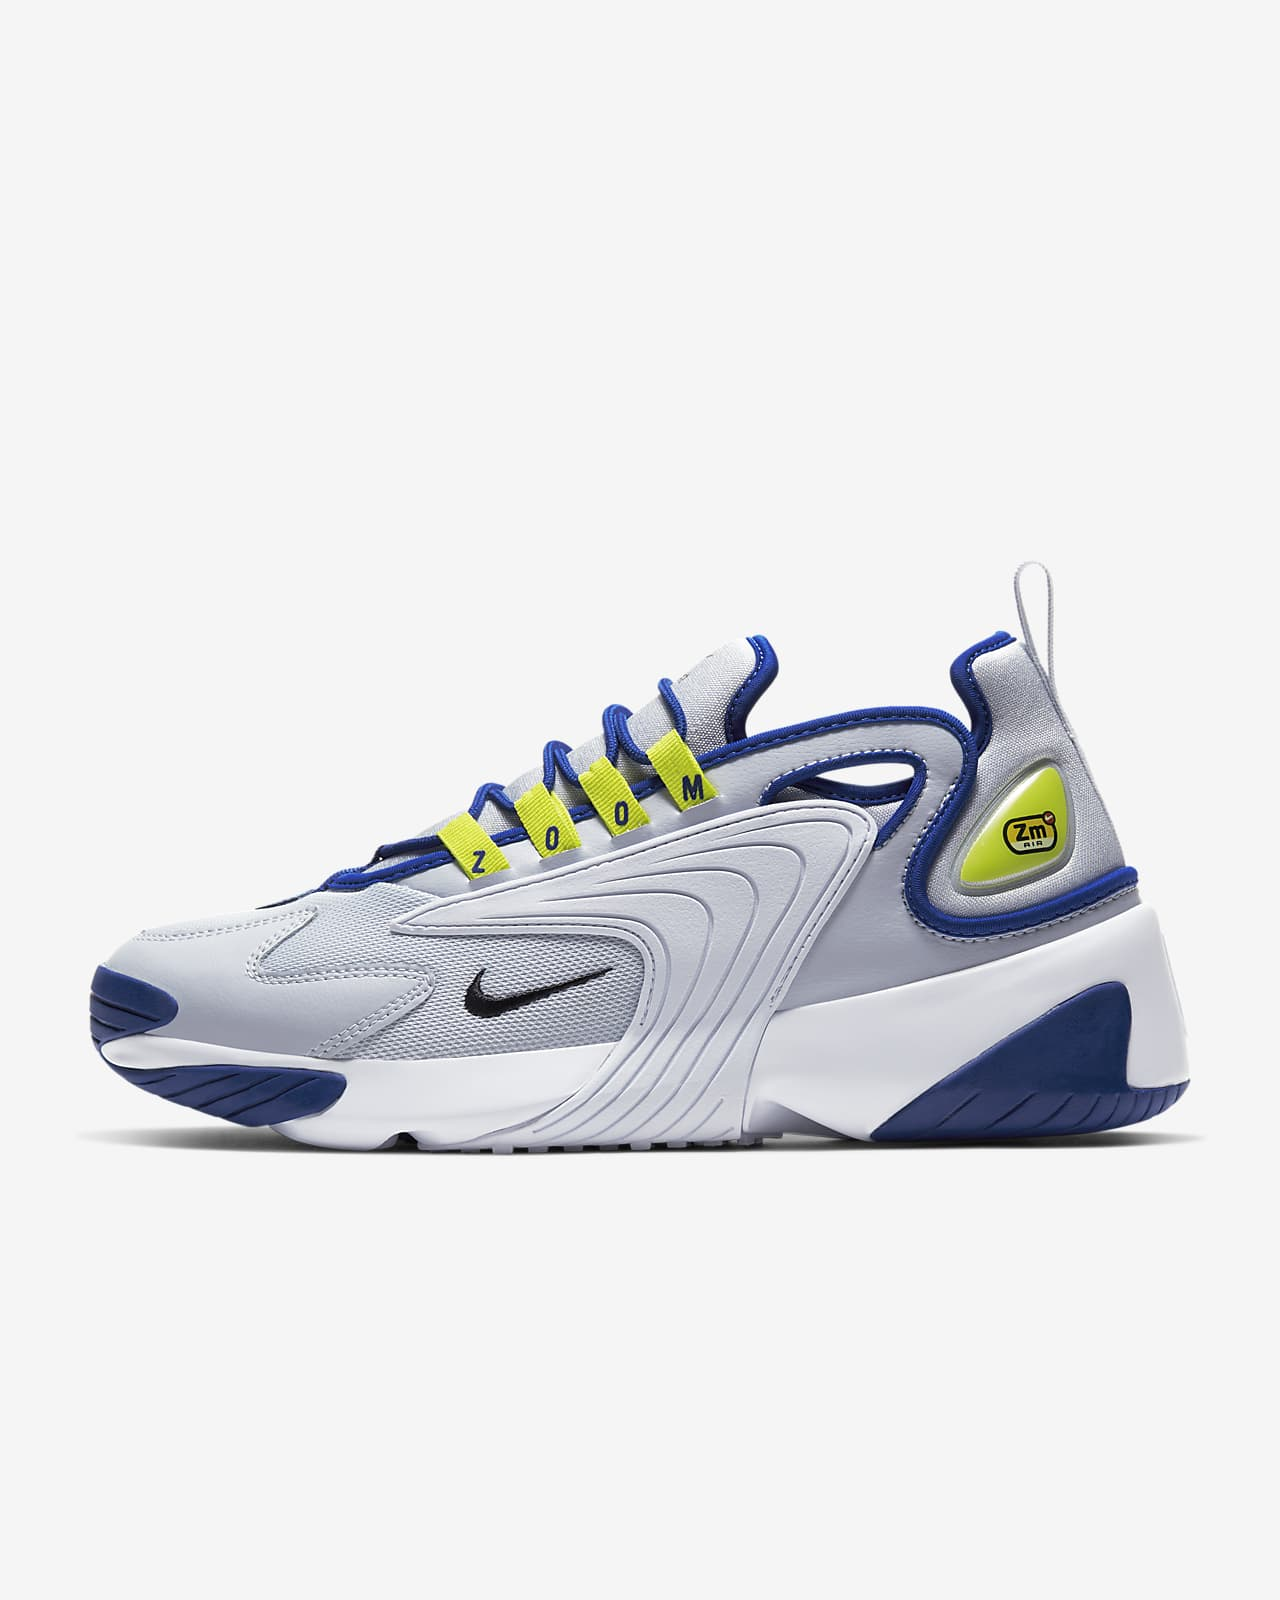 mercado hecho Transistor  nike zoom 2k trainers in blue cheap nike shoes online